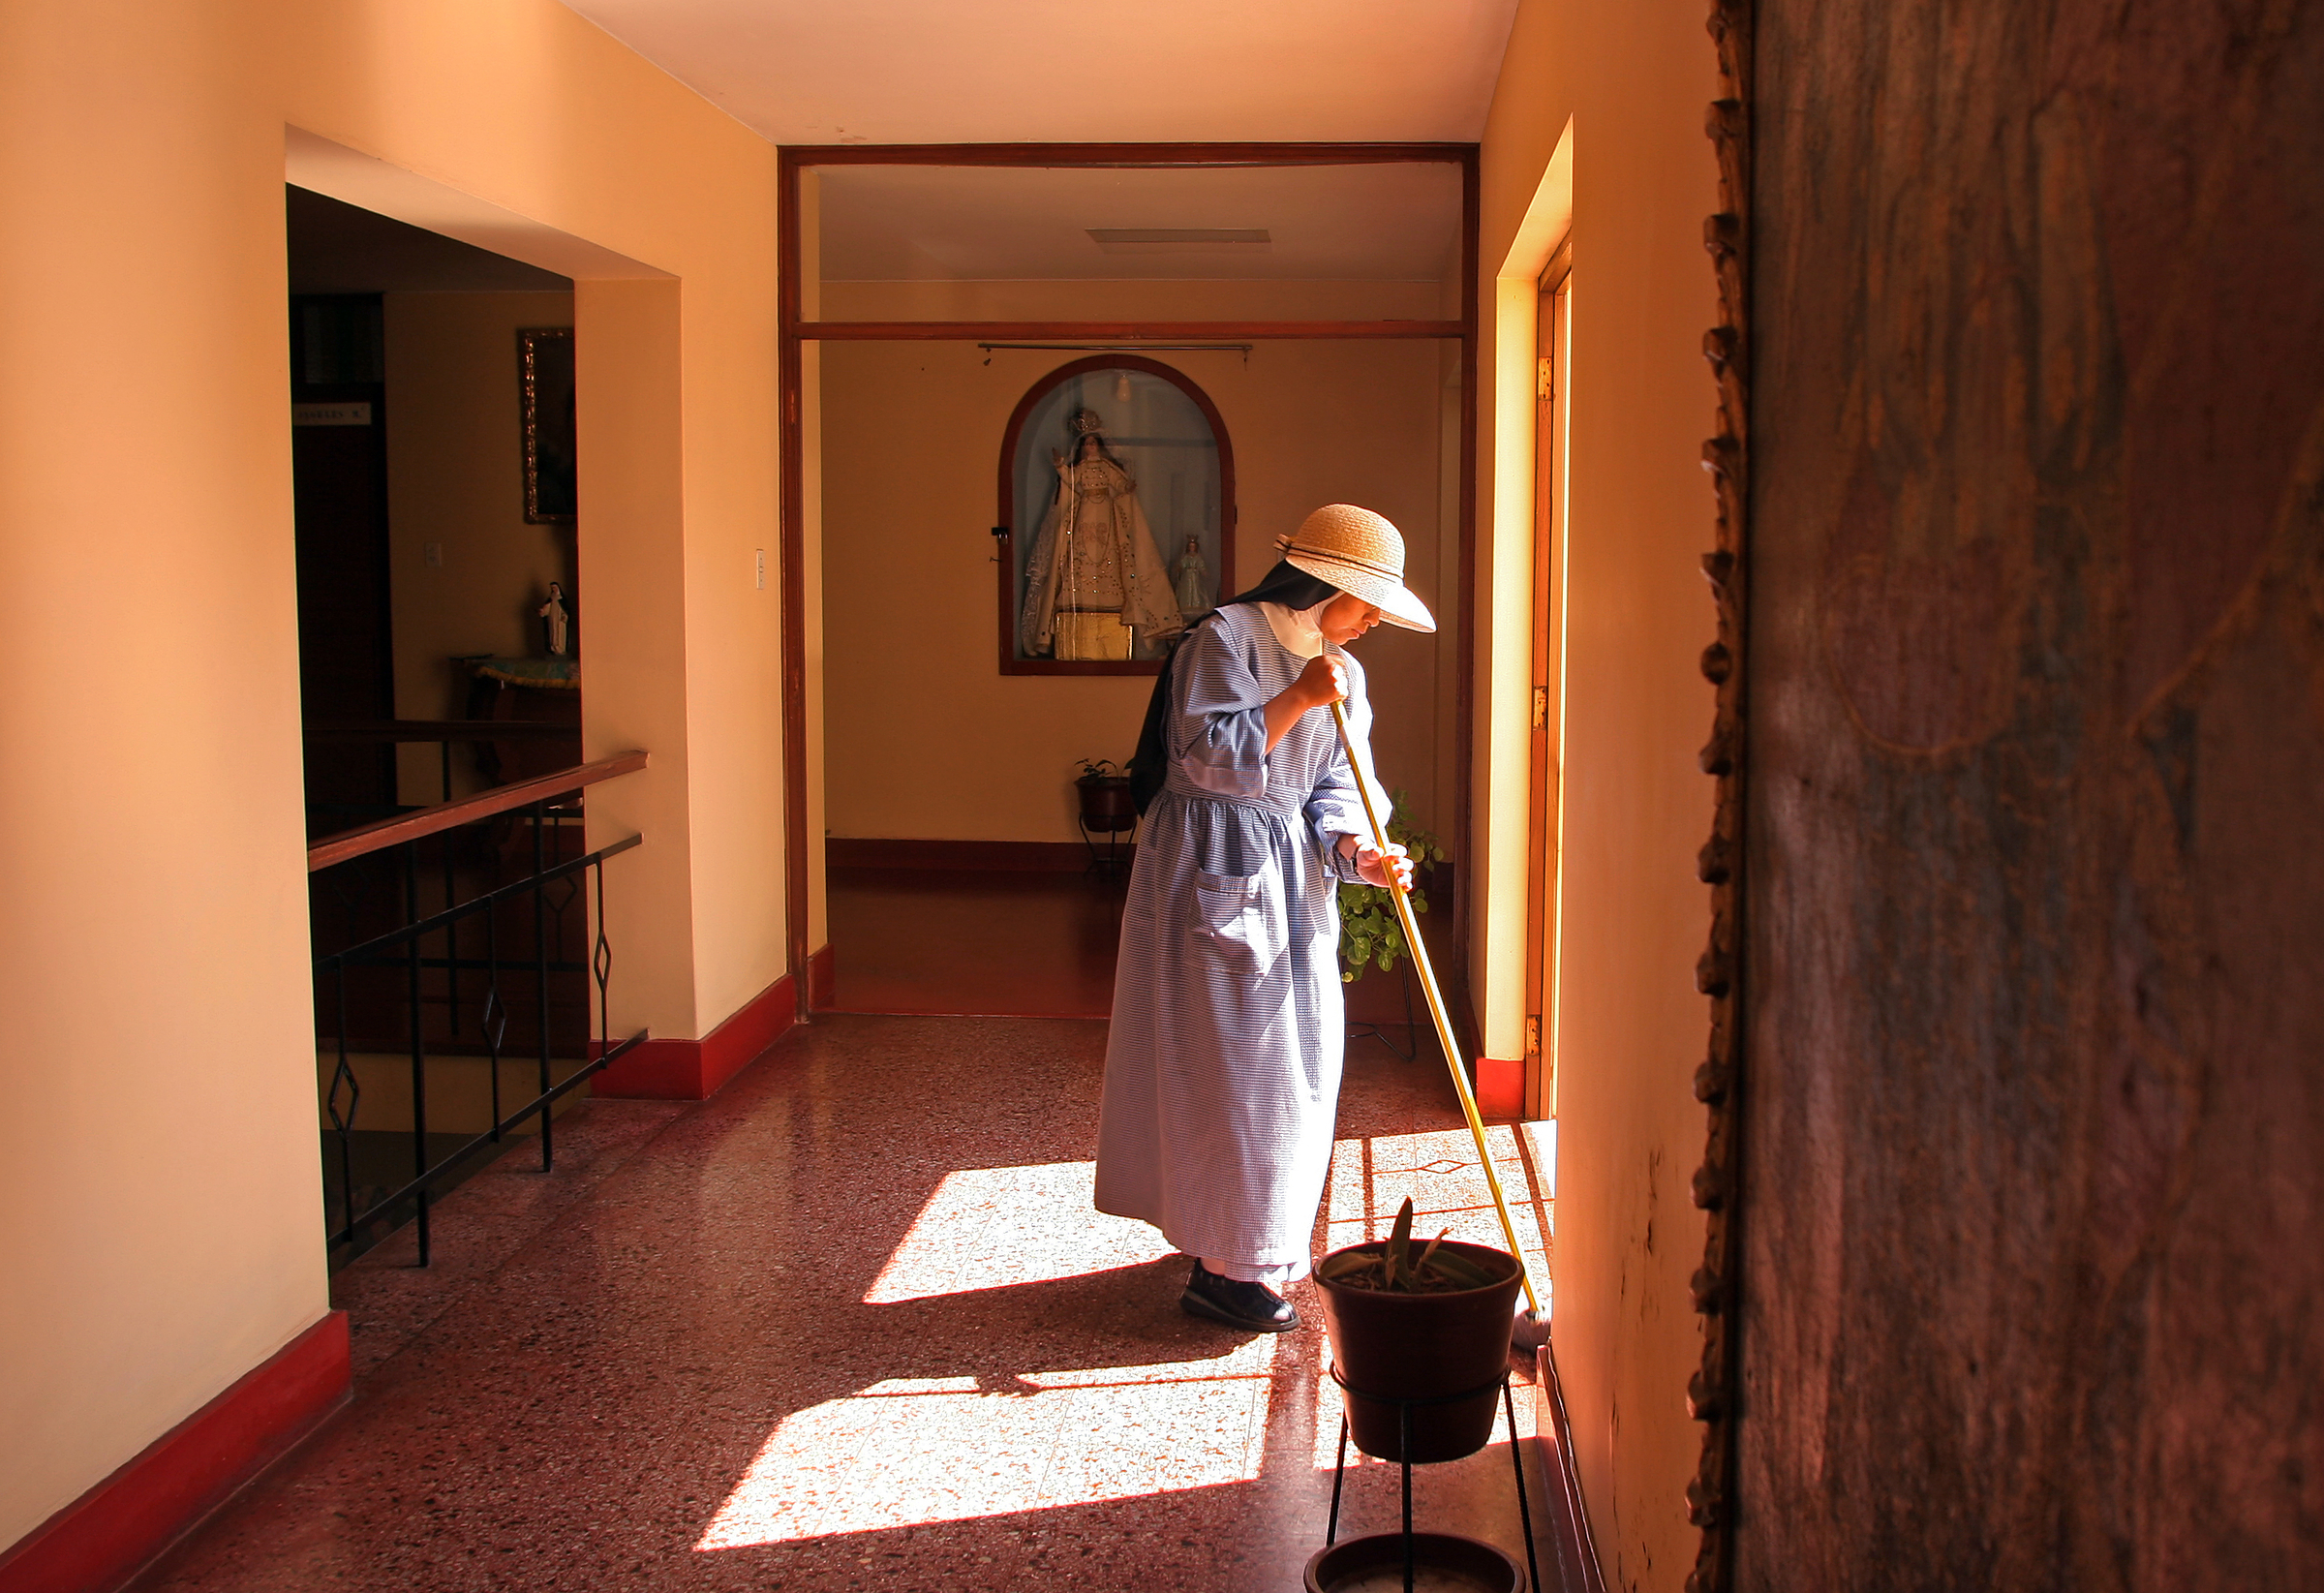 A nun mops the floor in the dormitory area of the monastery.